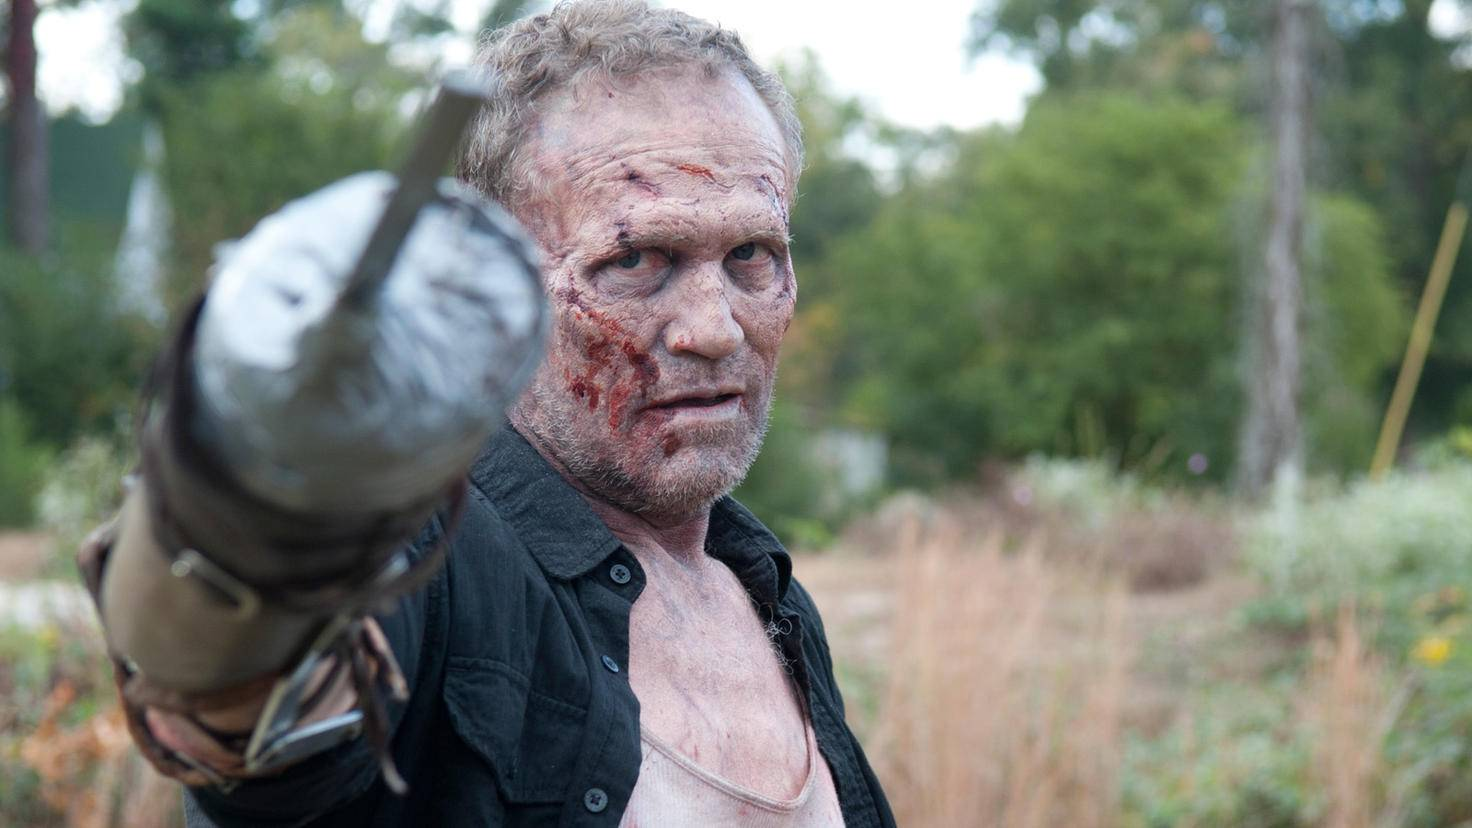 Merle-The Walking Dead-Gene Page-AMC-TWD_GP_315_1026_0252